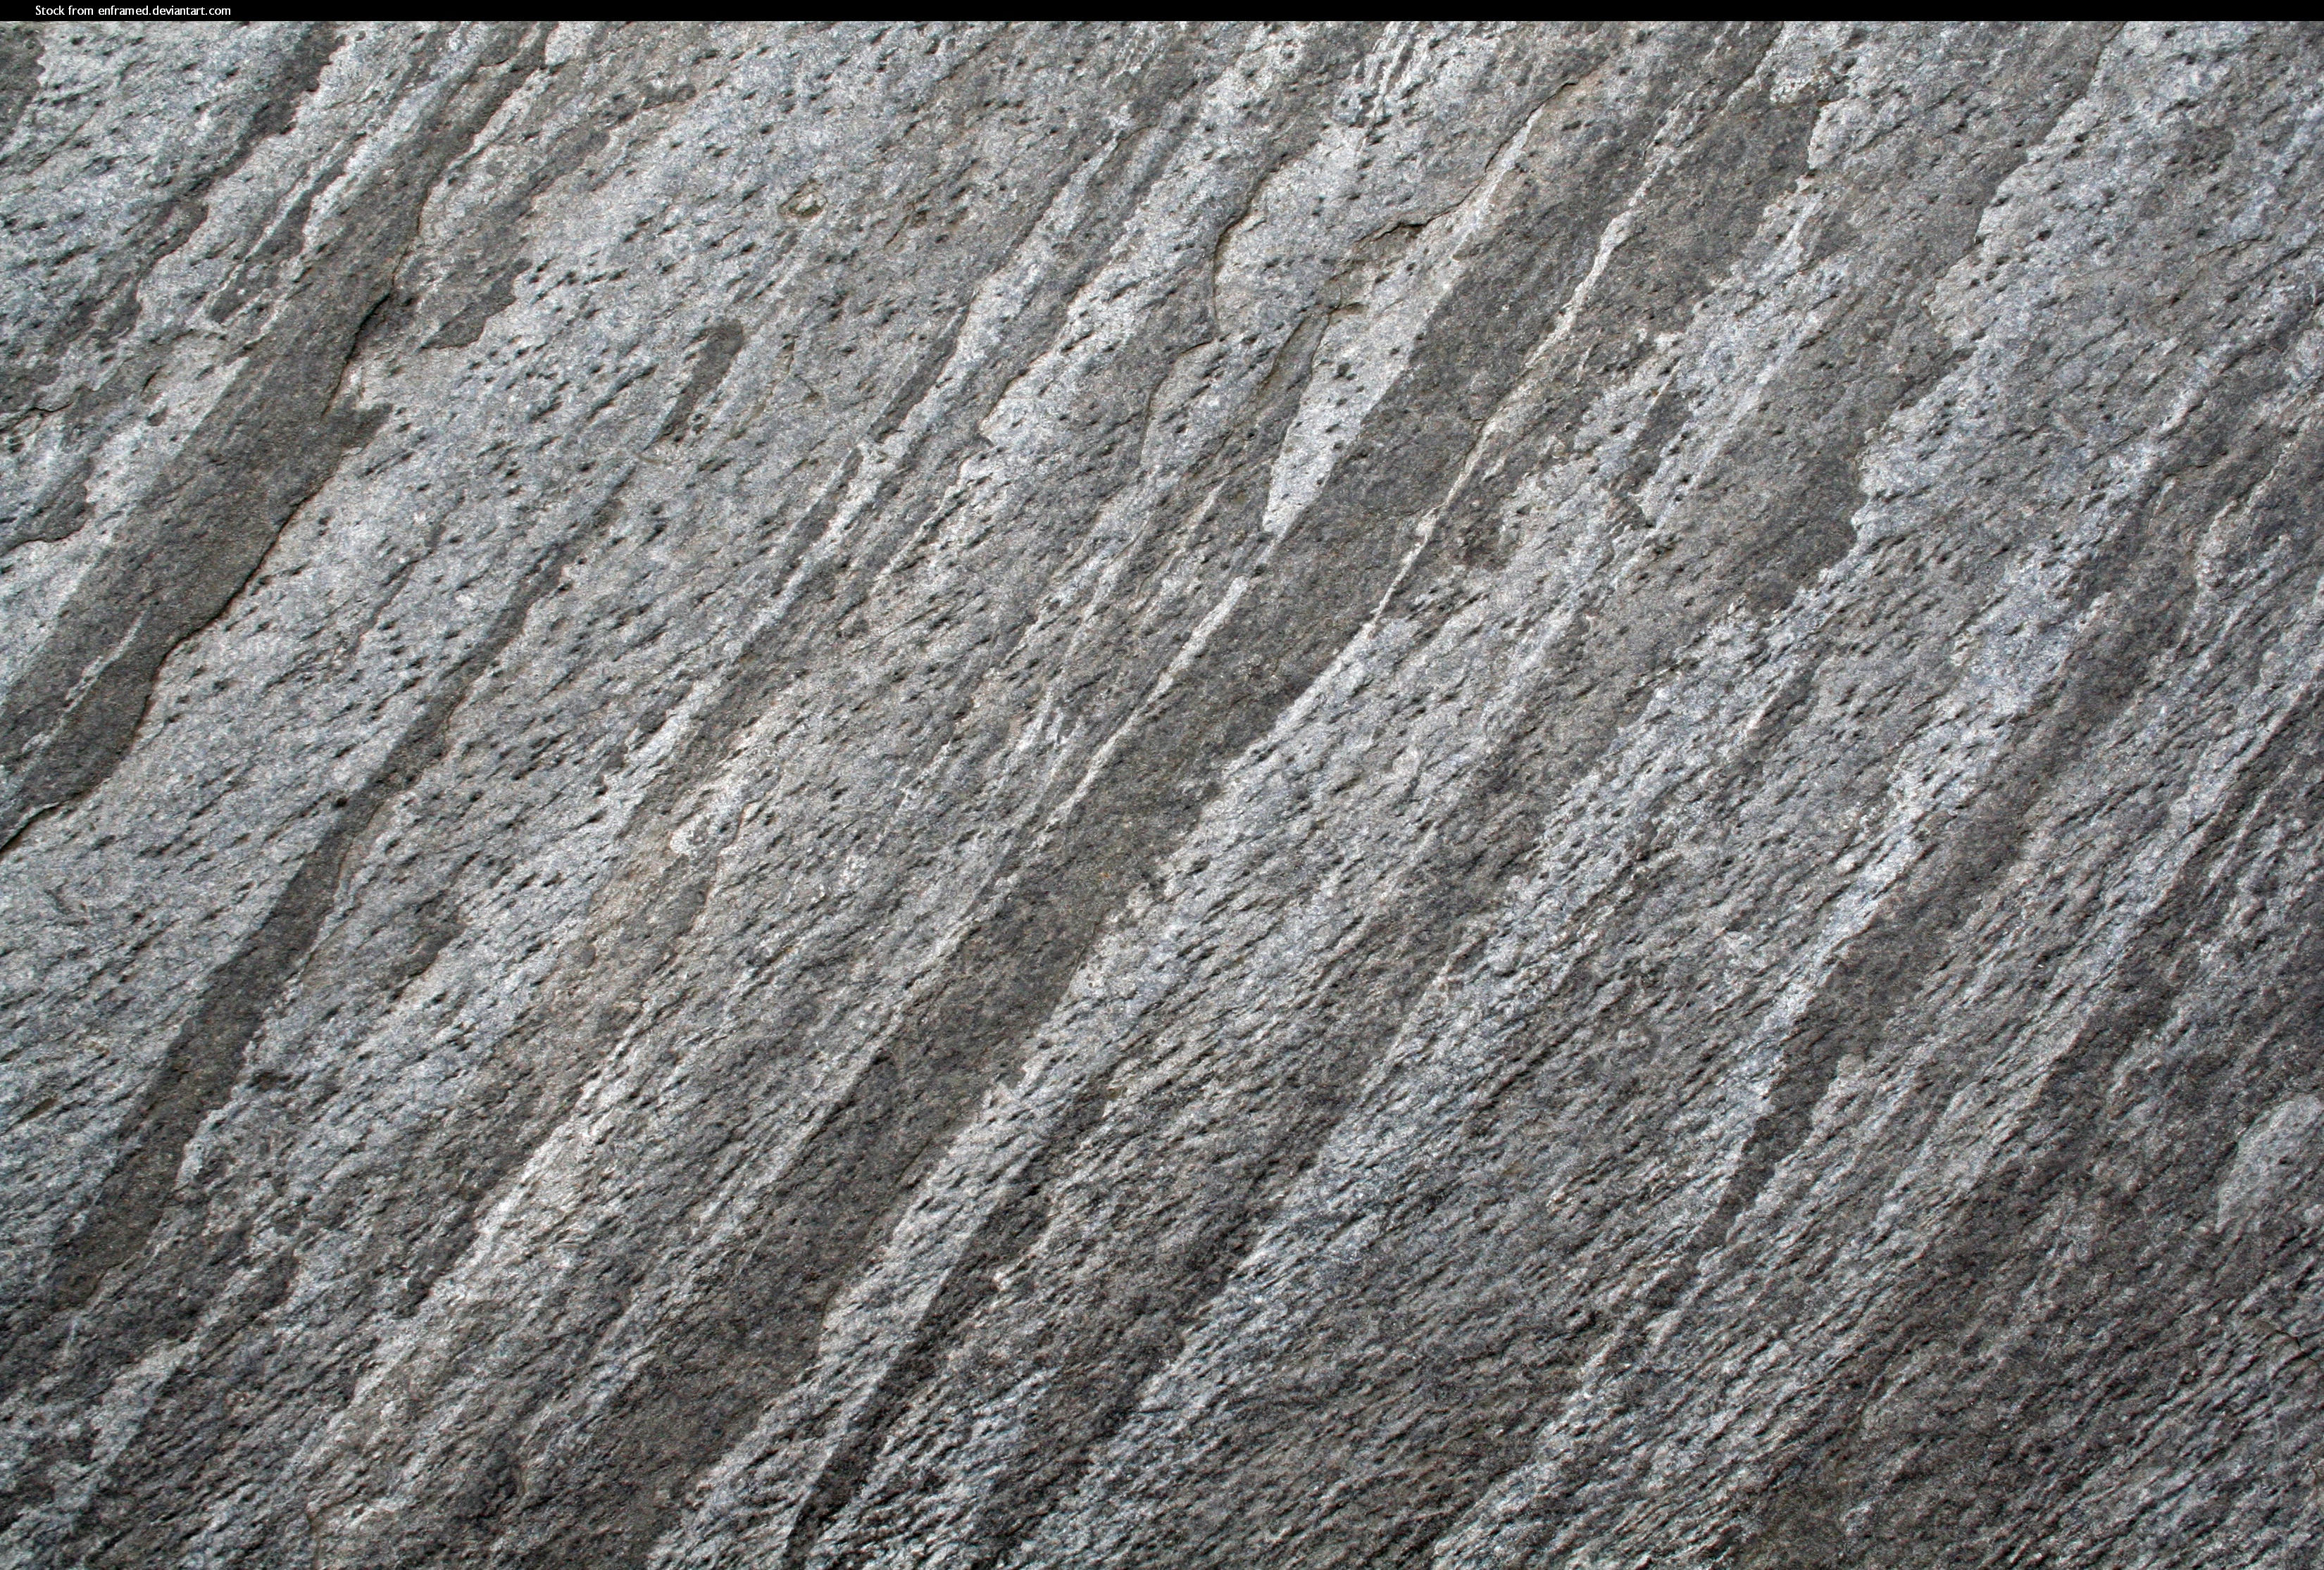 stone texture l2 by enframed scraps 2005 2015 enframed stone texture ...